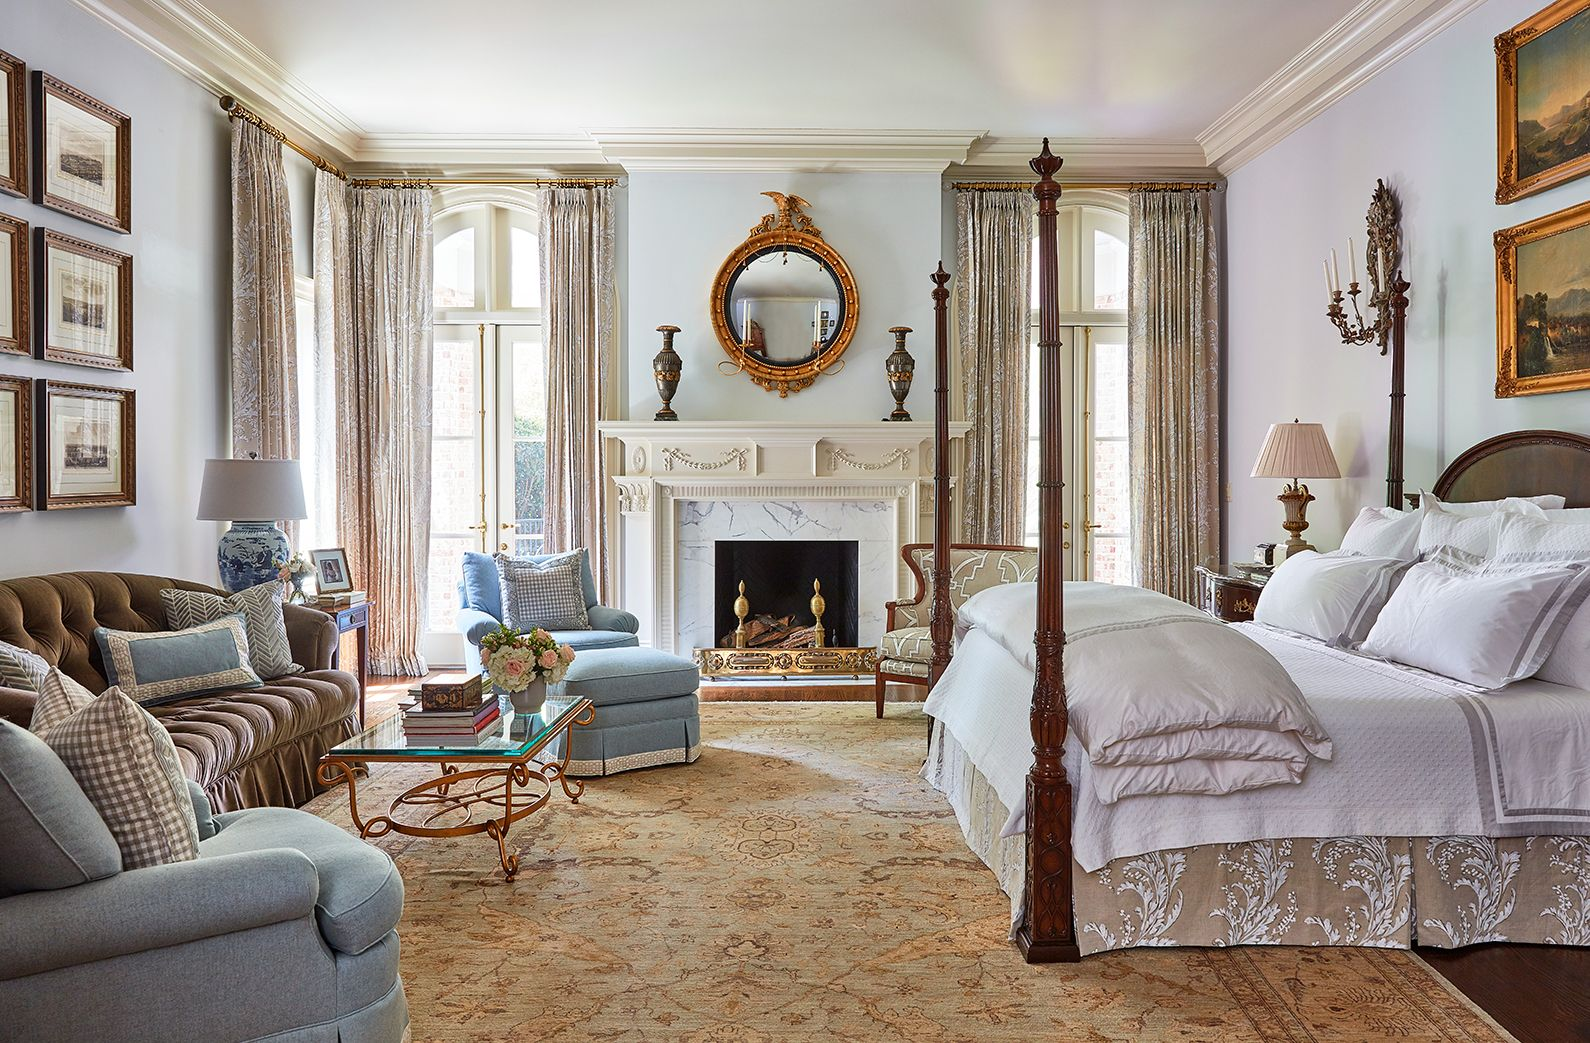 With Already Established Grounds And Interiors We Worked With The Lovely Homeowners In Updating Many Of Their Spaces U Master Bedroom Home Elegant Home Decor Master bedroom in the white house